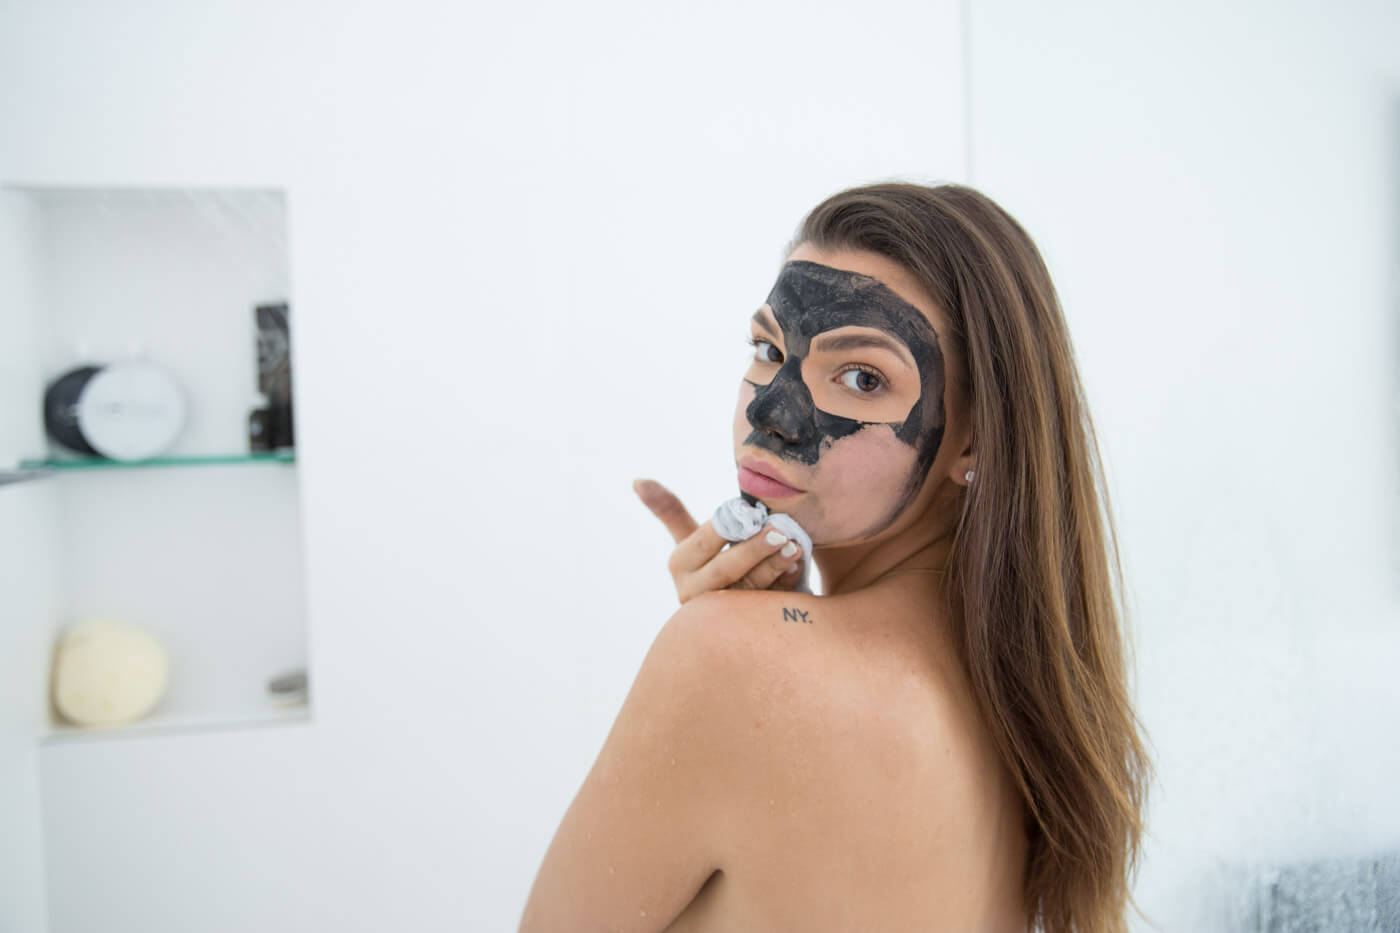 Spend your 20 minutes waiting for the mask to dry to relax or have a glass of bubbles